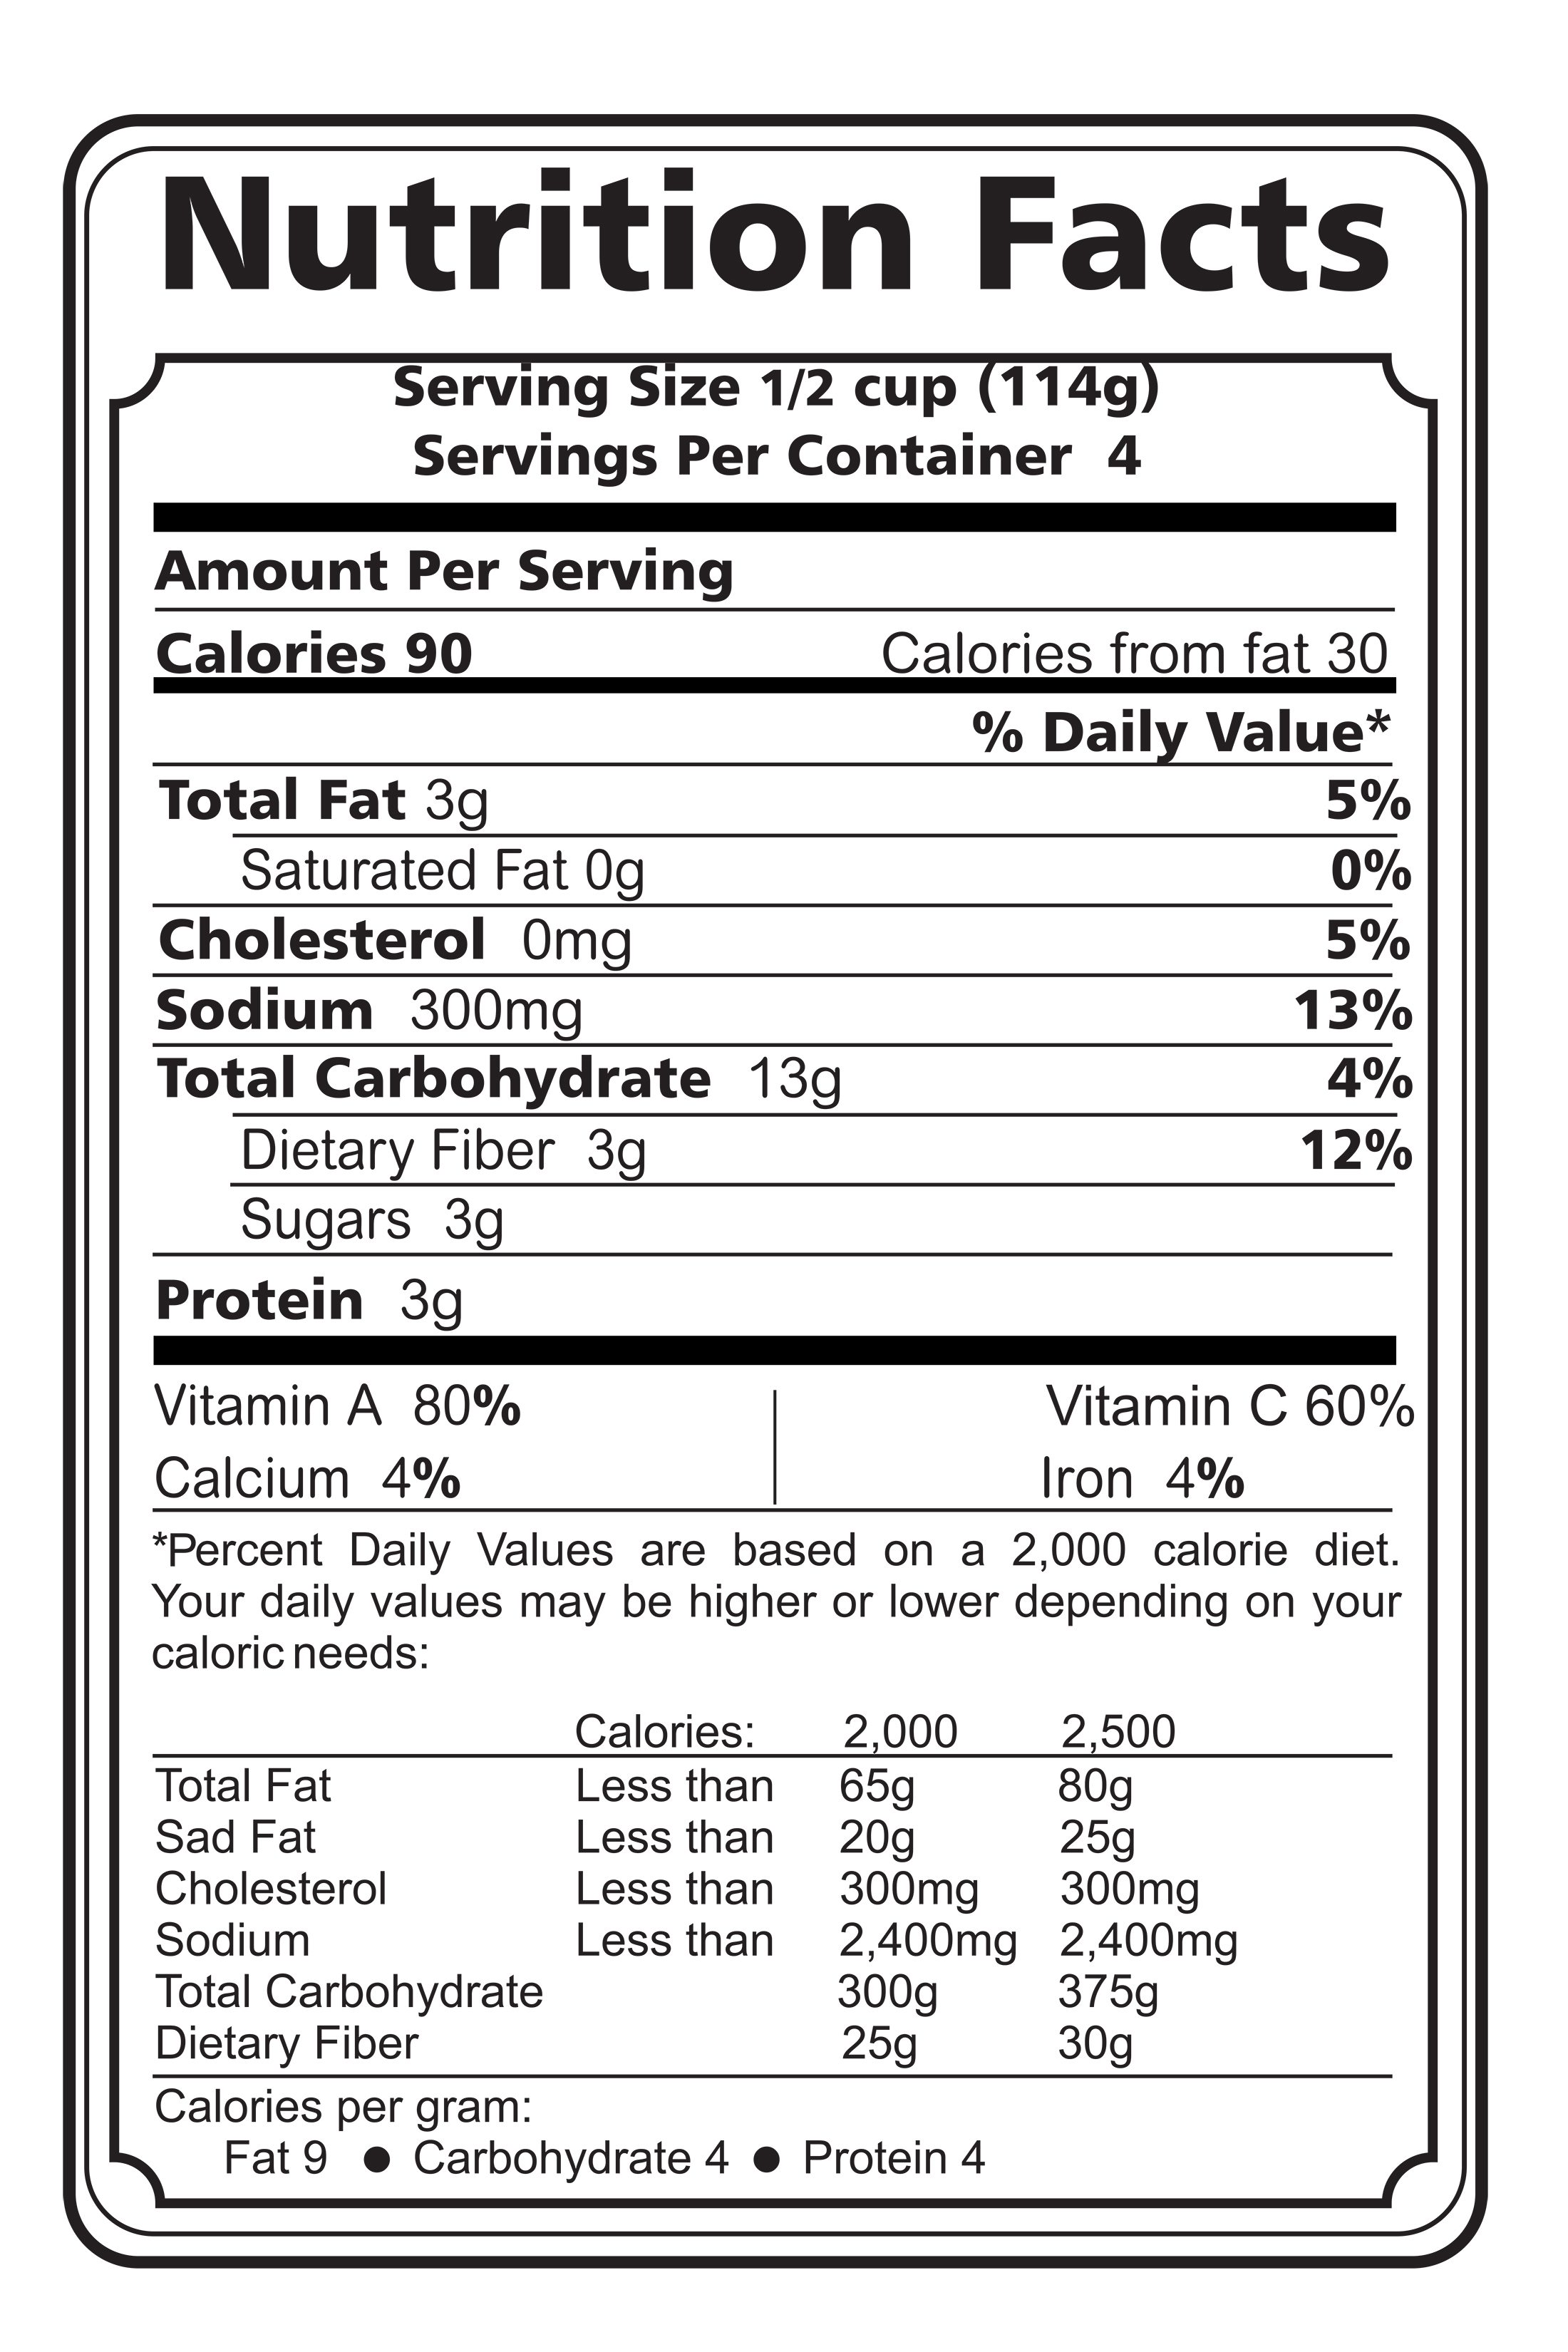 Worksheets Reading Food Labels Worksheet understanding nutrition labels worksheet intrepidpath food label tips